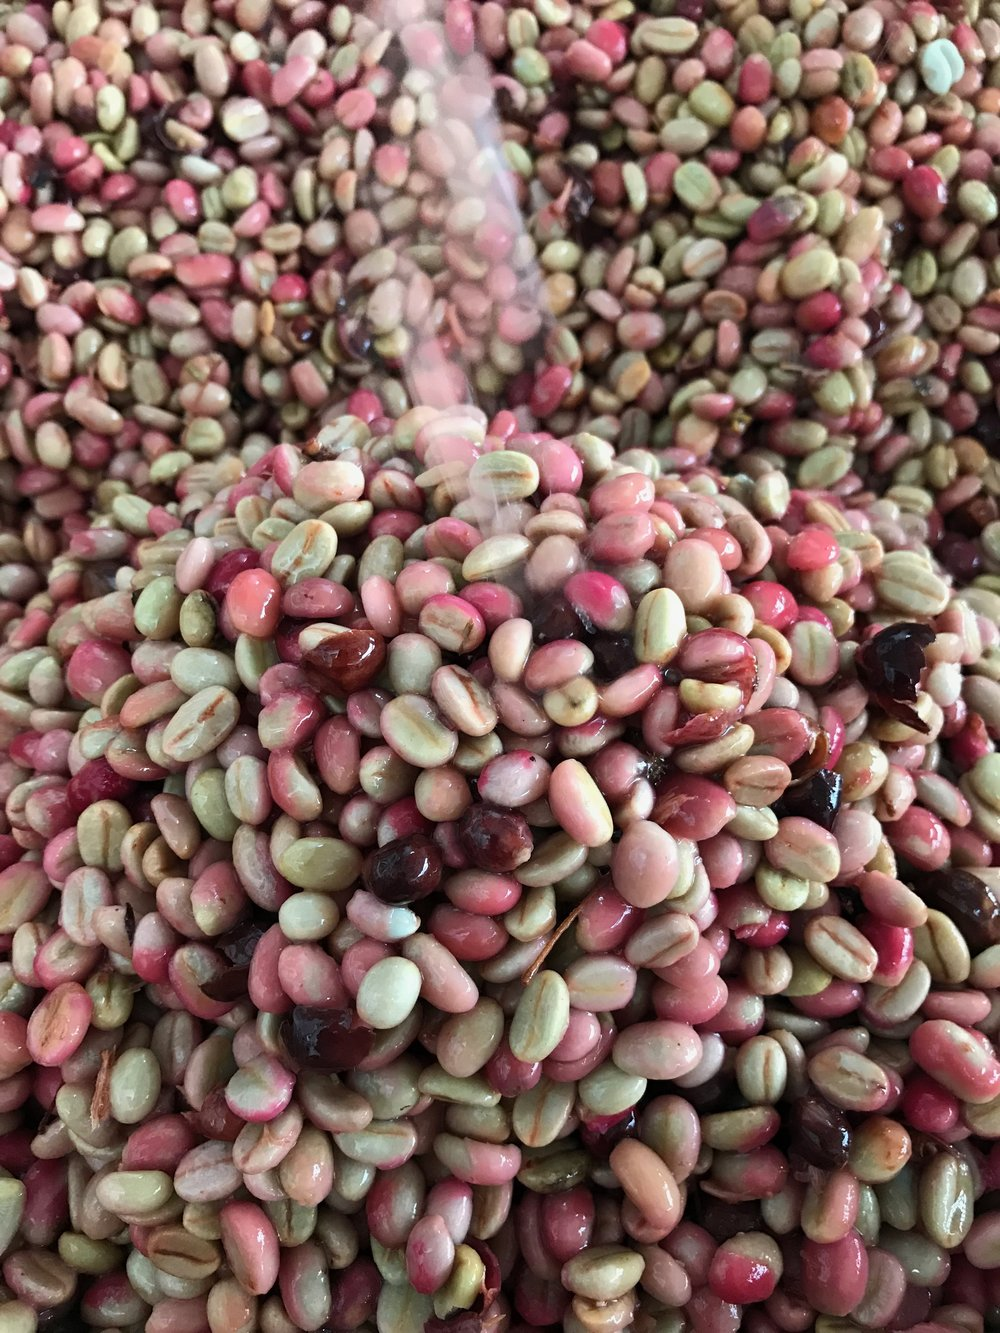 Lactic fermented beans after depulping